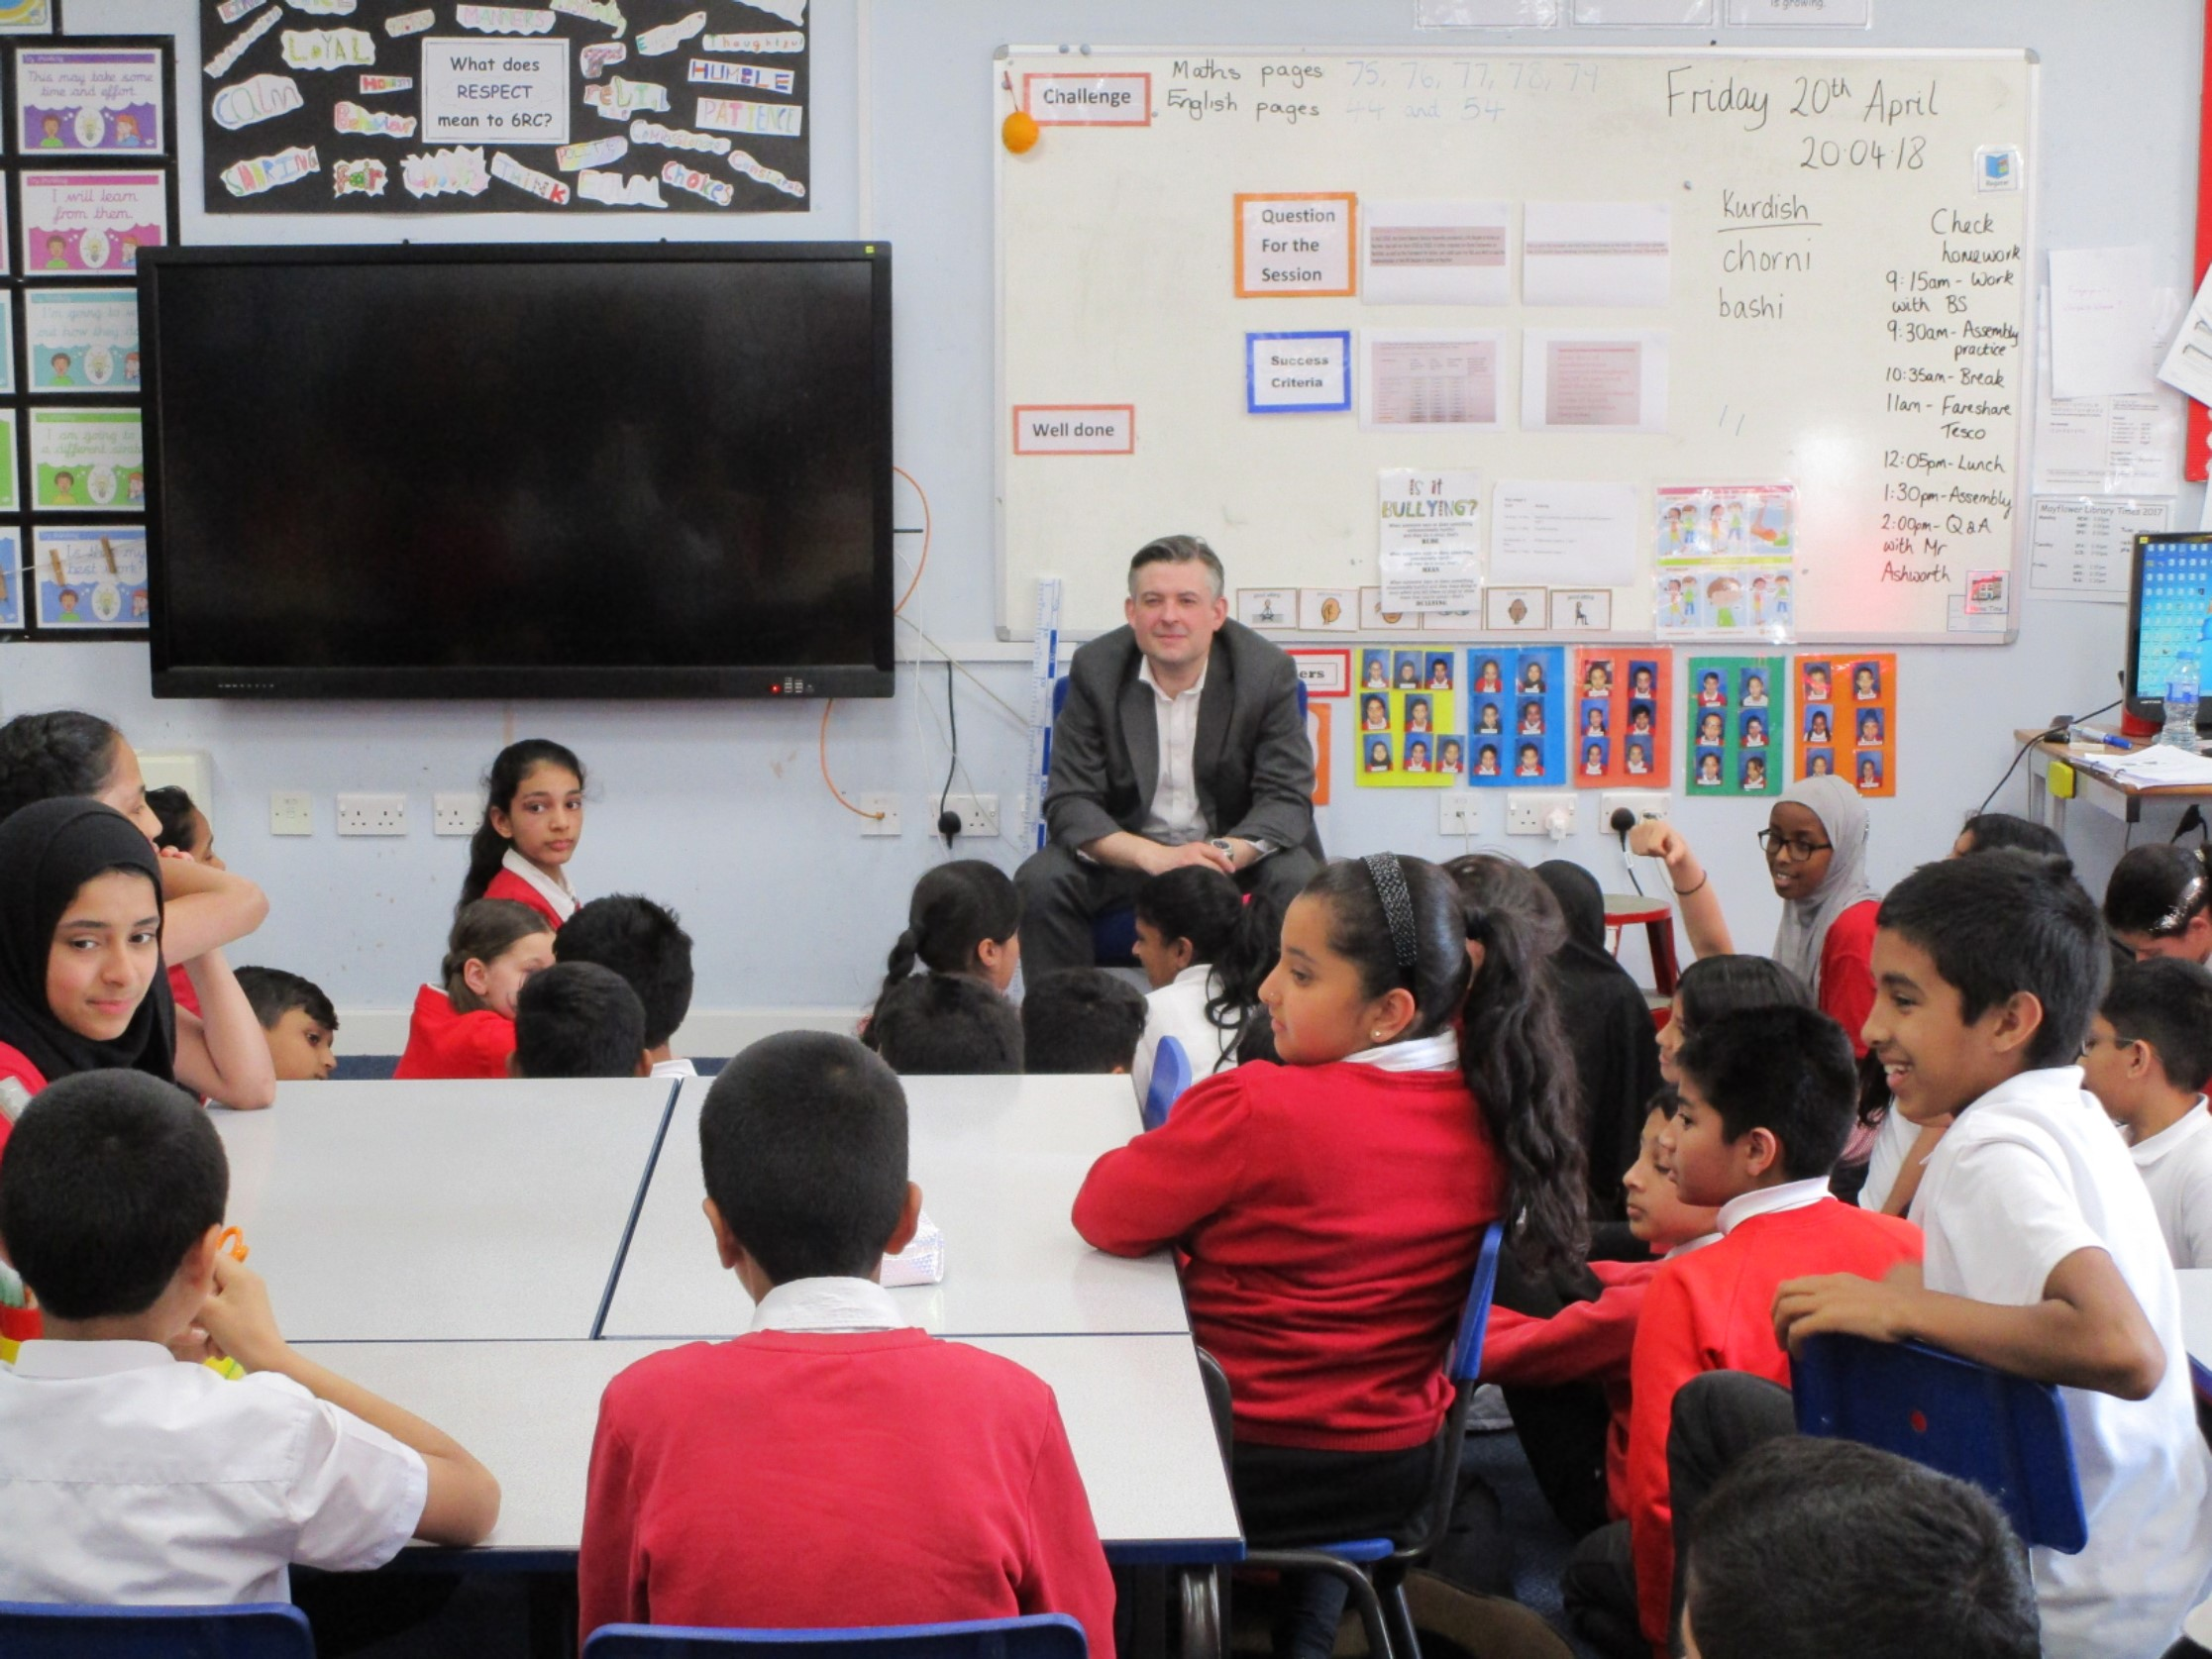 Jon Ashworth, Labour MP for Leicester South, visits Mayflower Primary as part of the 'Zero Hunger' Project and has a Q&A with Year 6 - Friday April 20 2018